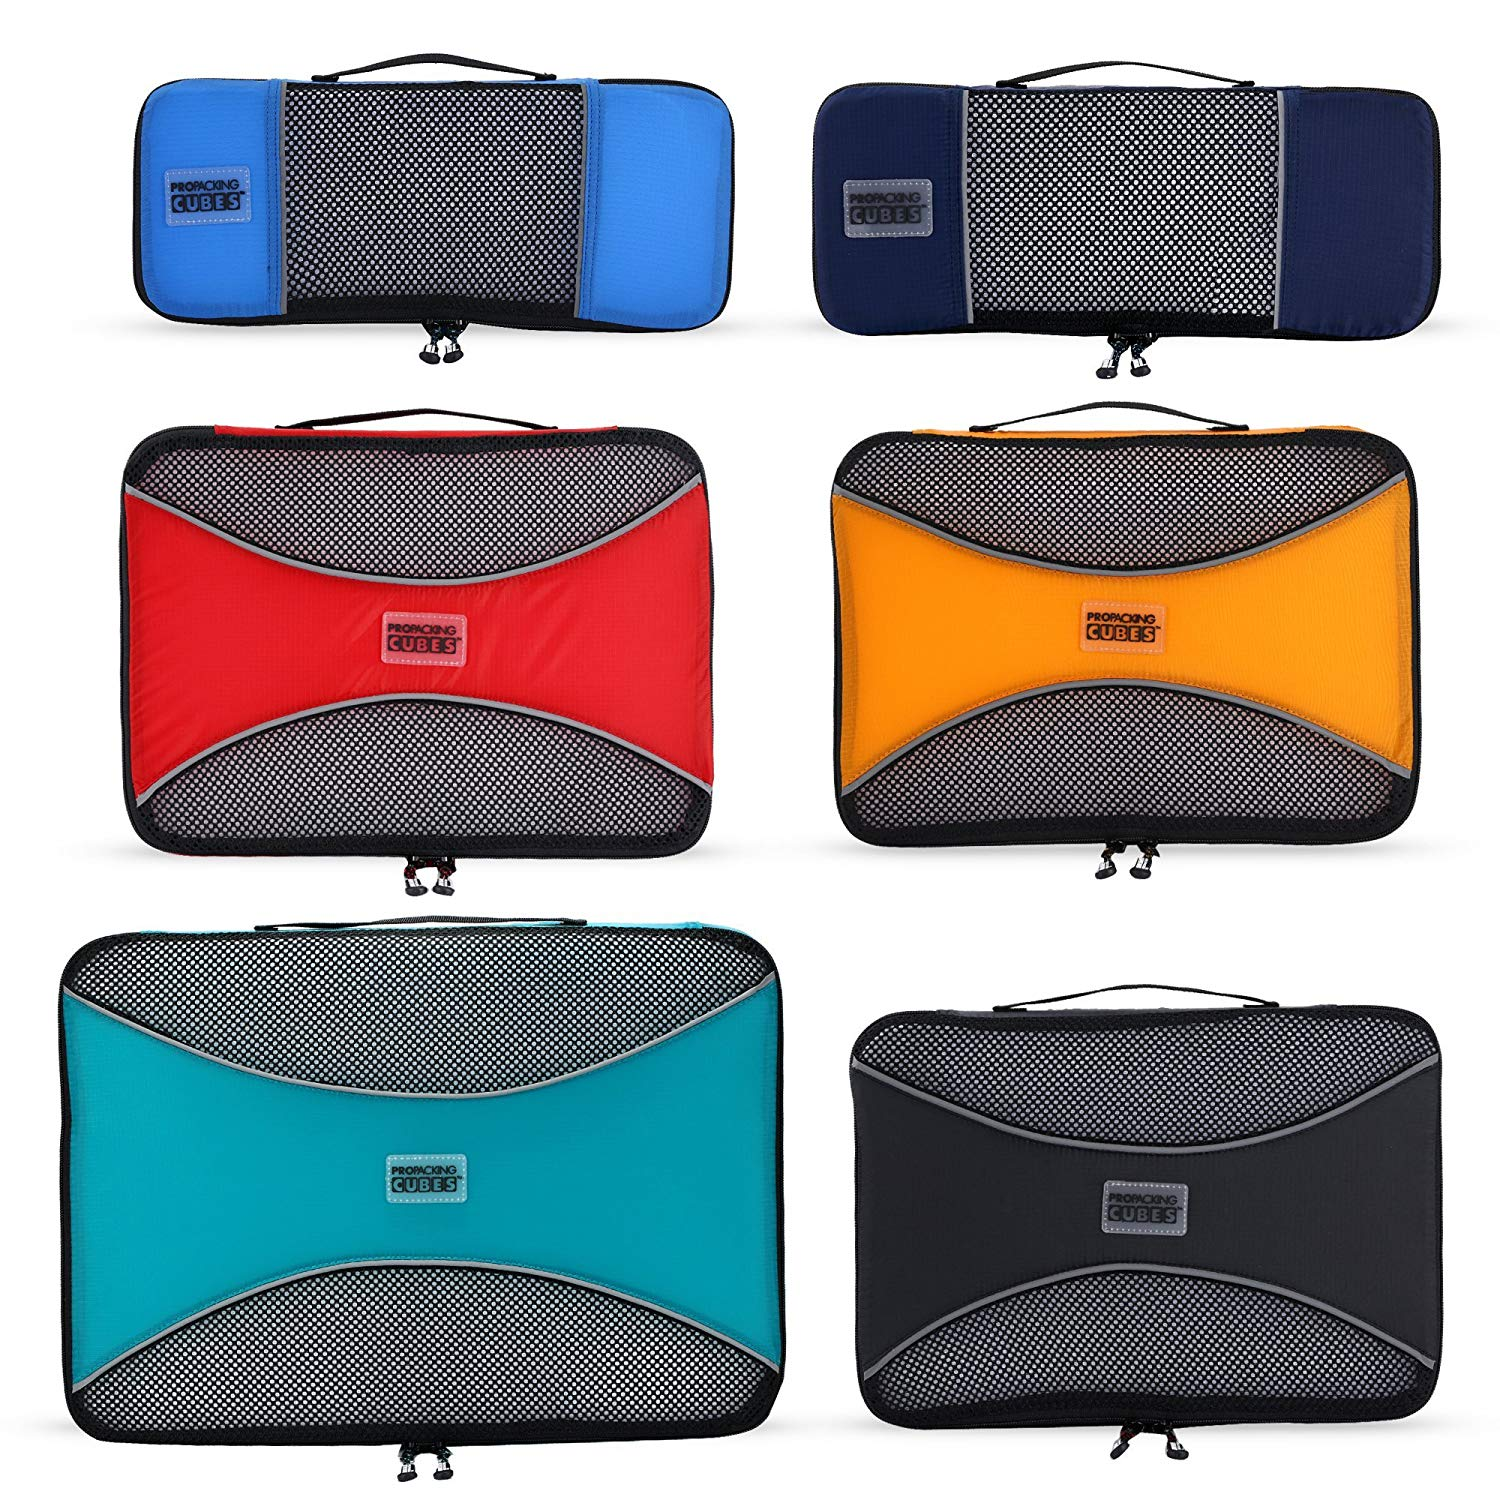 5. Pro Packing Cubes - 6 set